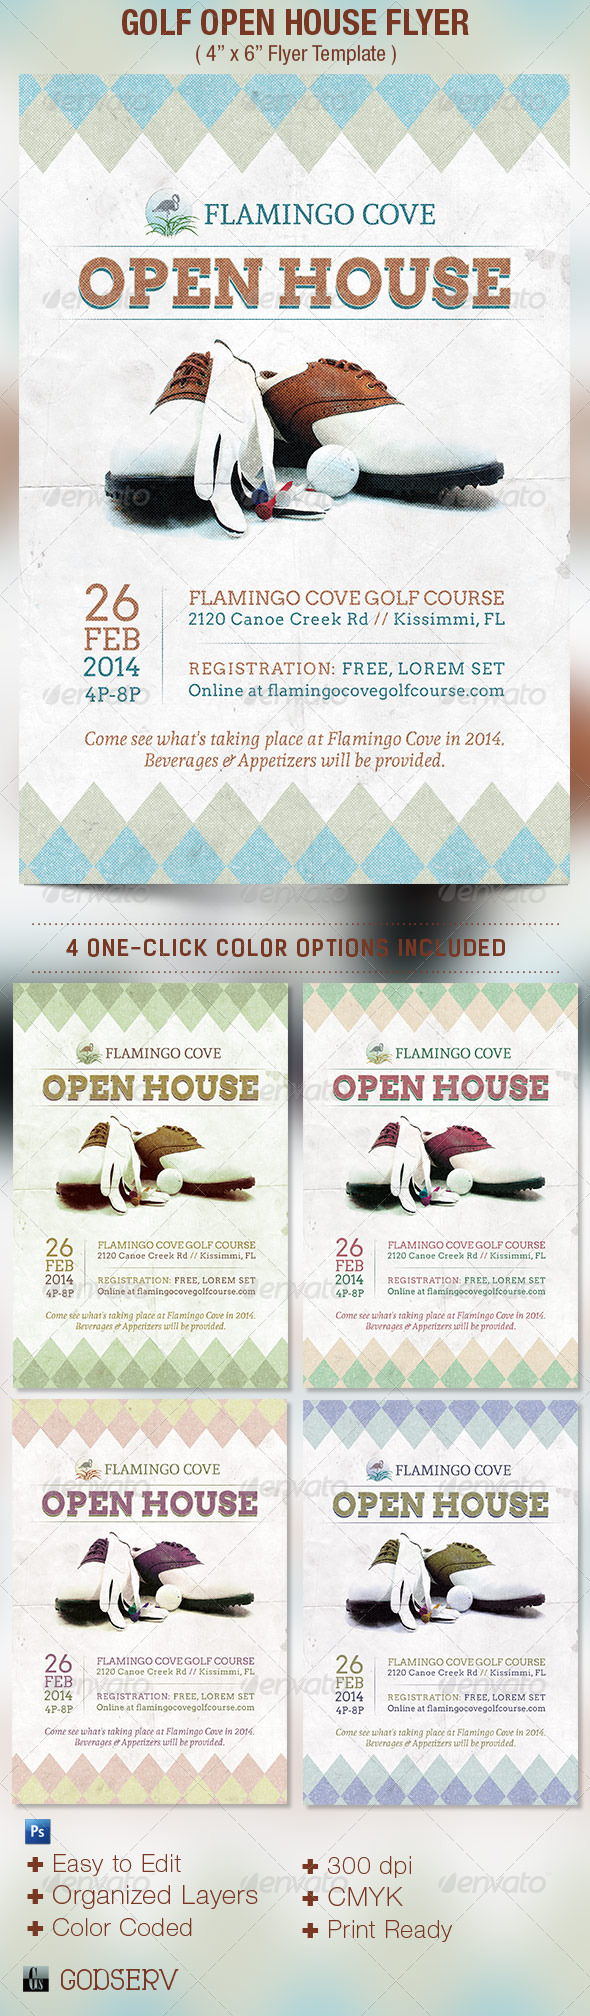 Golf Open House Flyer Template - Sports Events